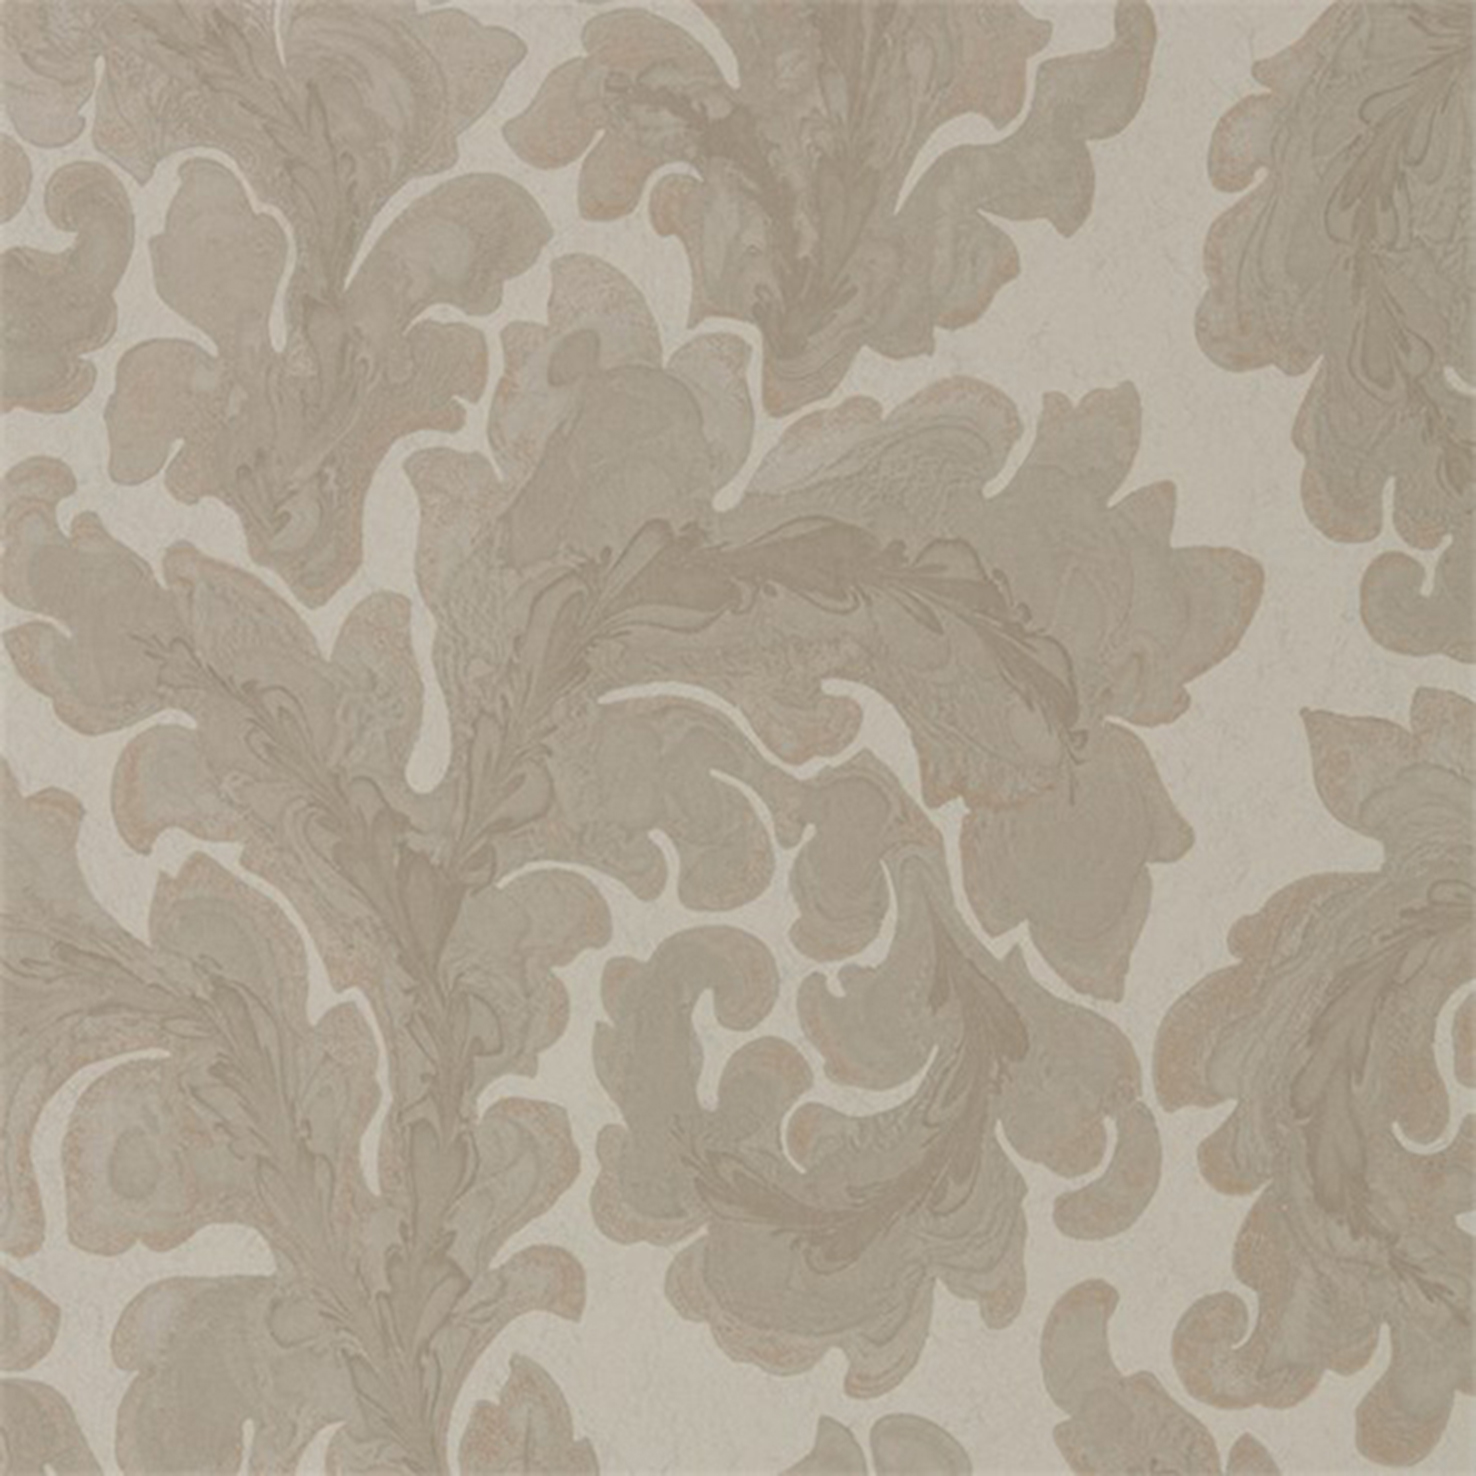 Image from the Zoffany website. Acantha wallpaper.